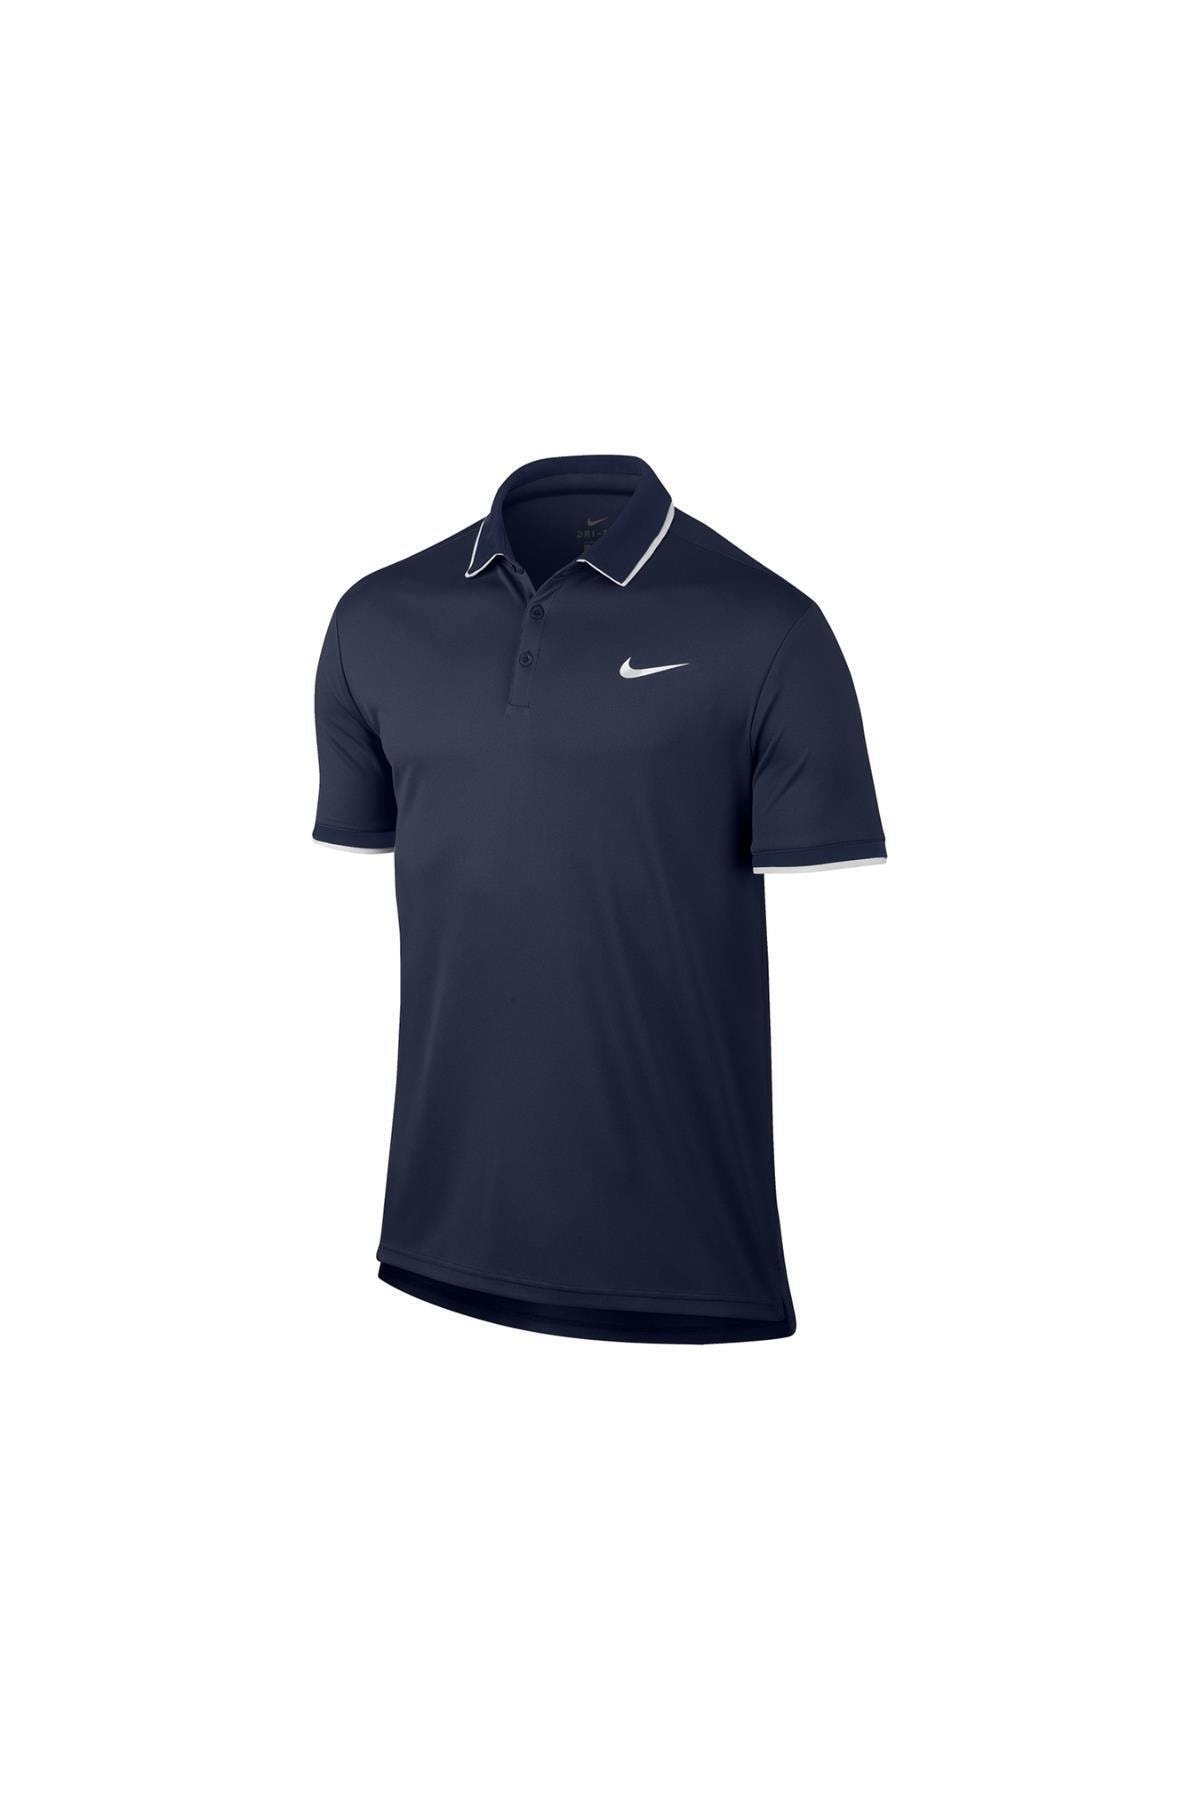 Nike Nkct Polo Team 830849-410 T-shirt 2